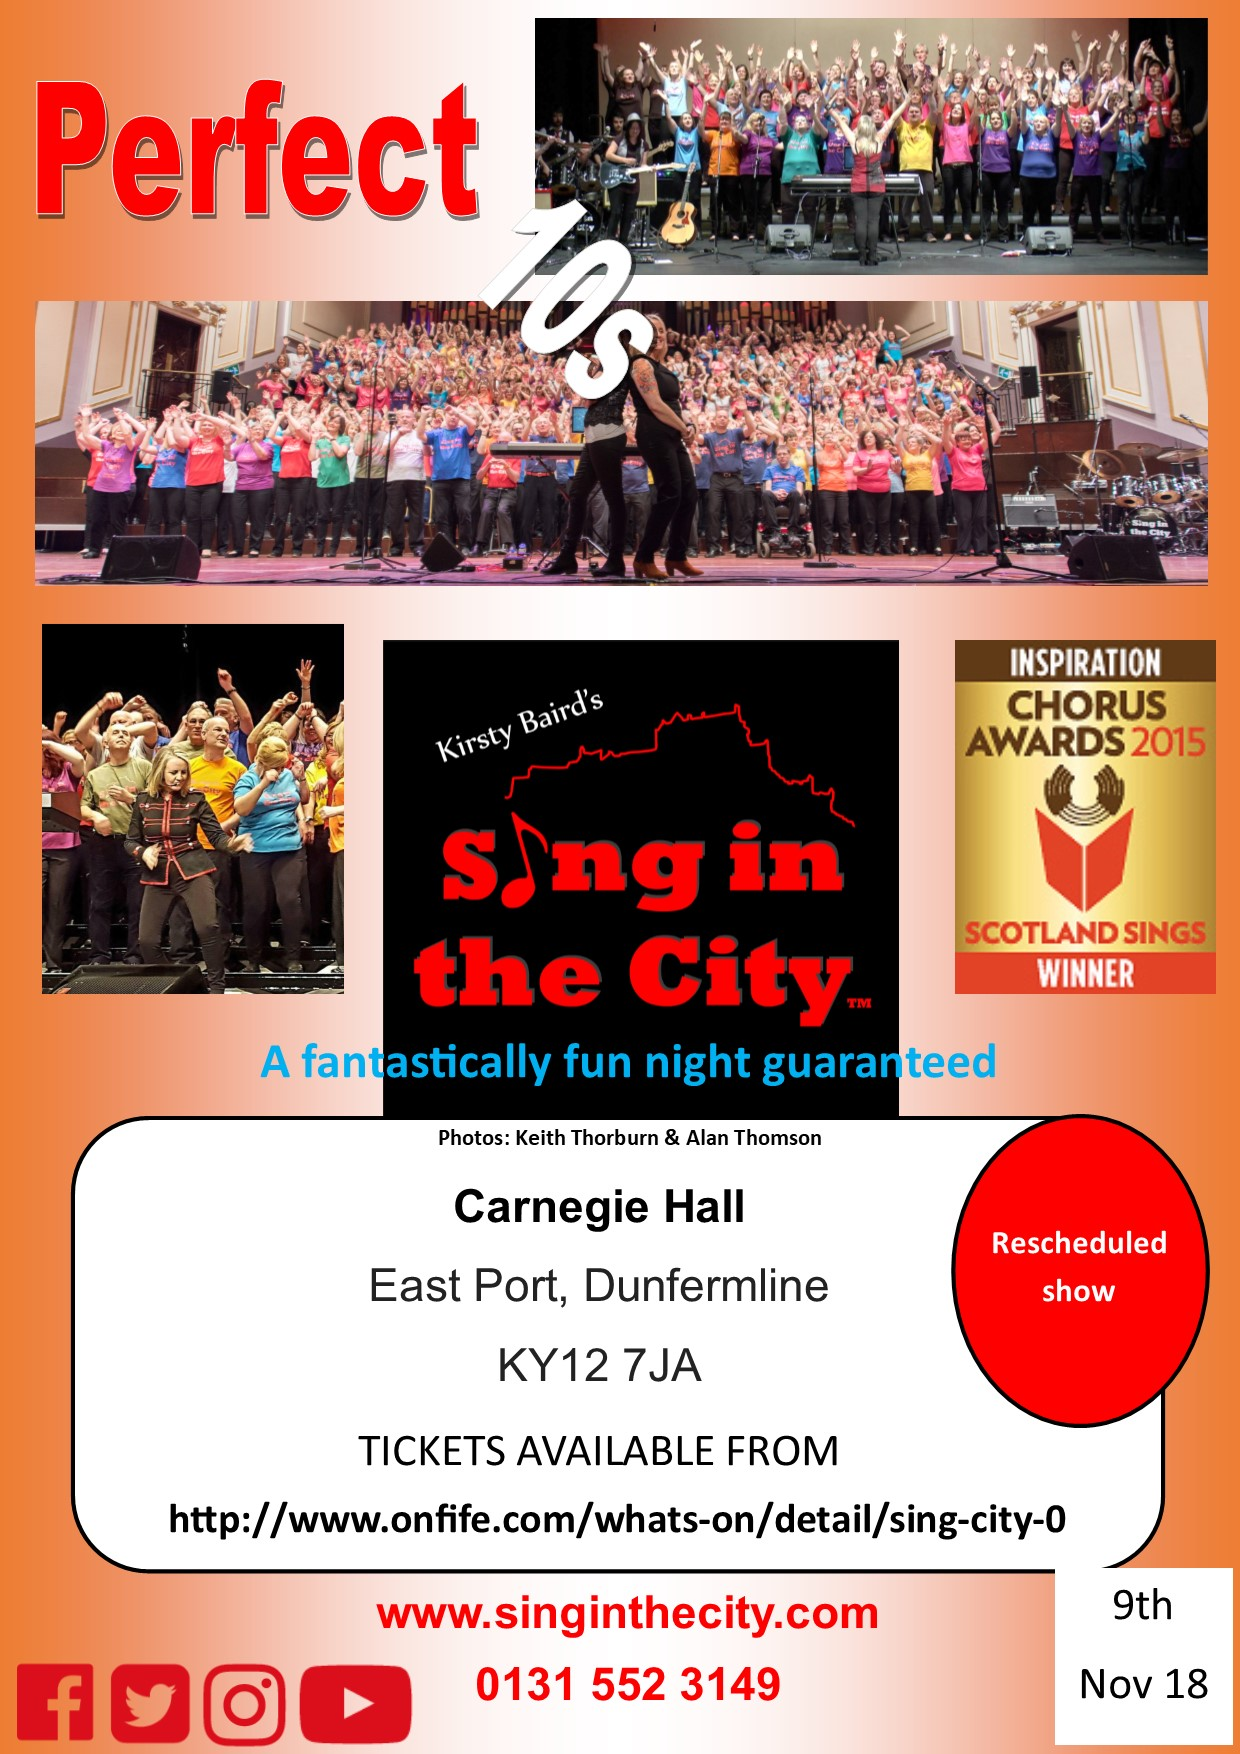 Poster for Sing in the City Perfect 10s (resheduled) show